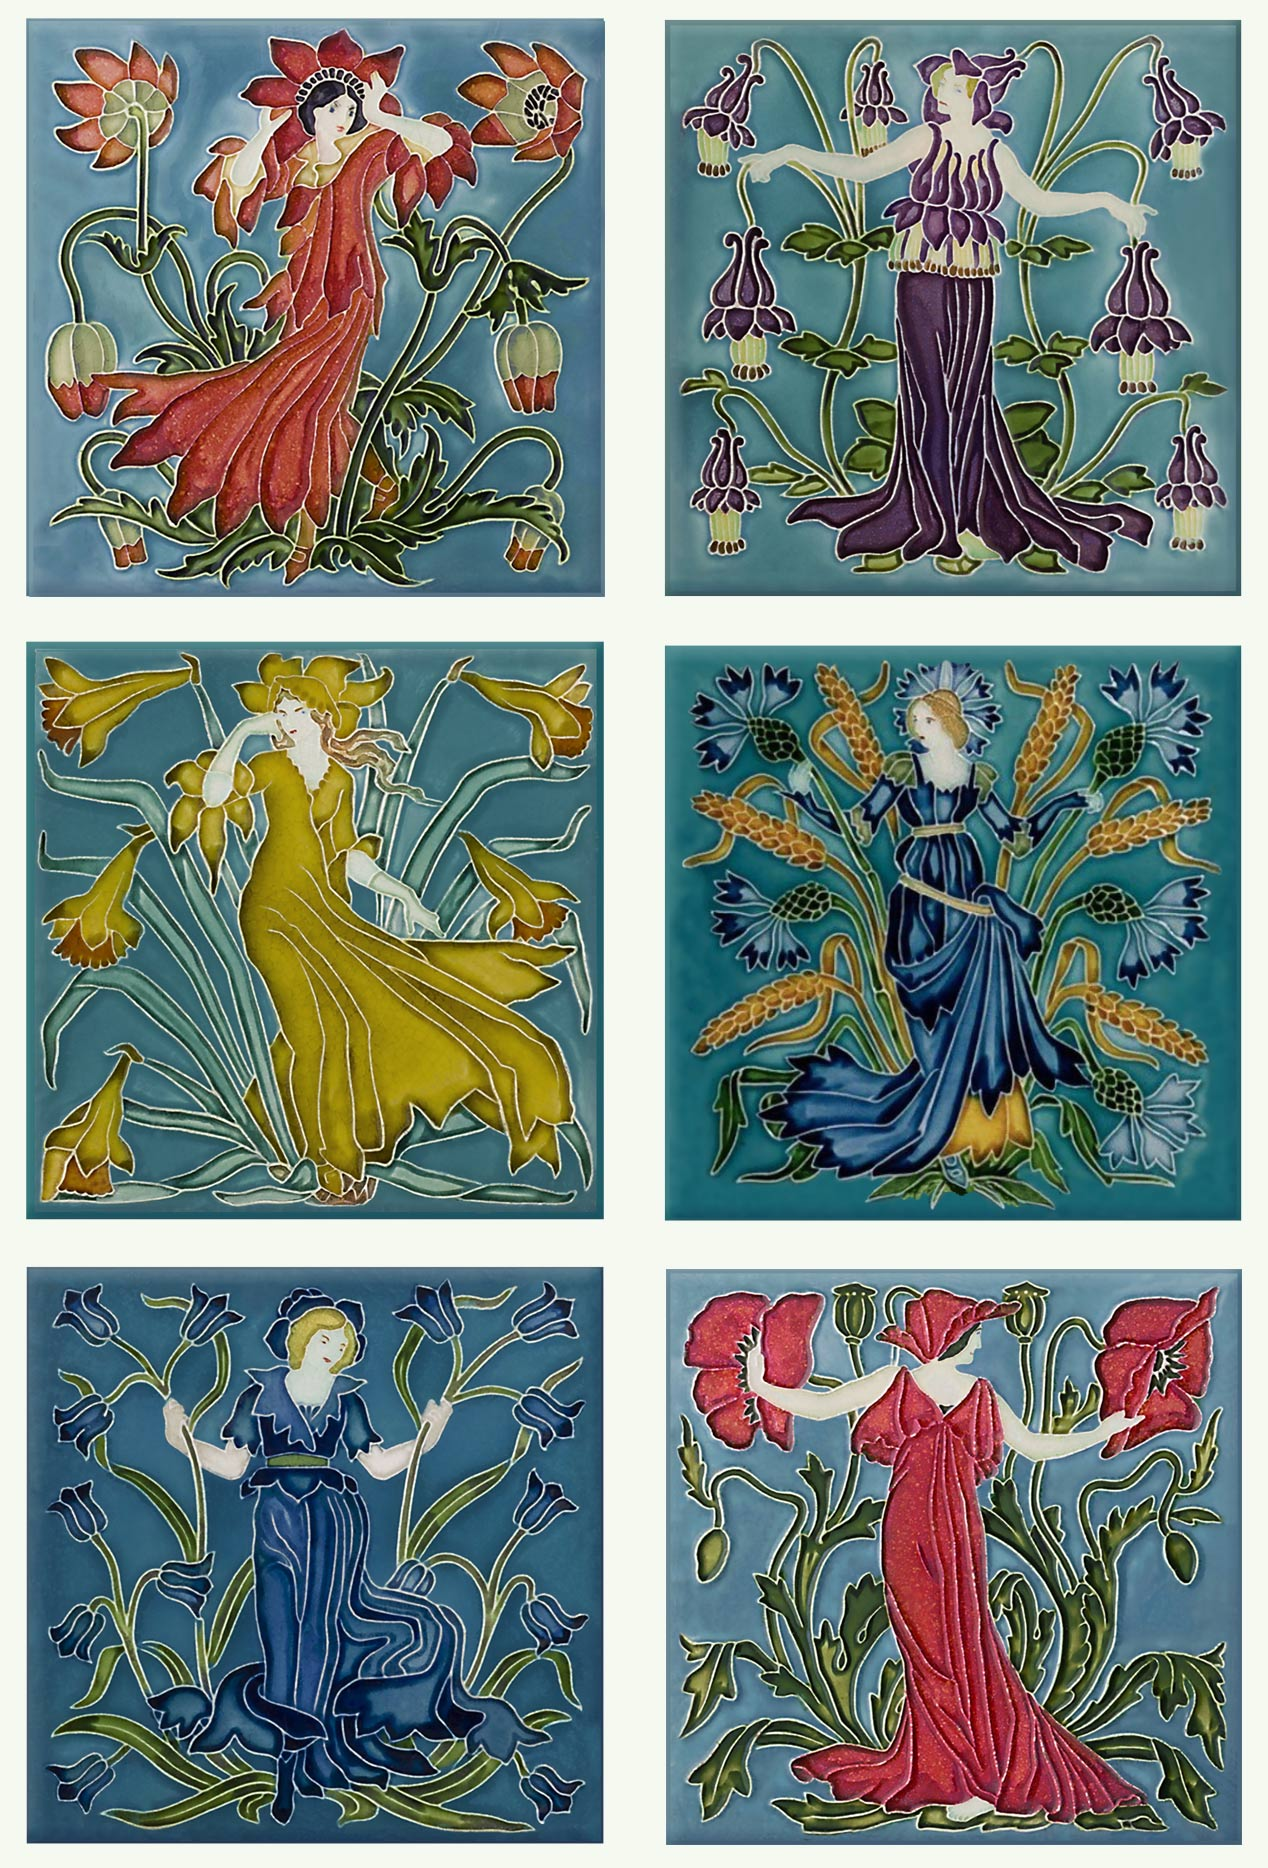 Walter Crane 'Flora's Train' flower tiles - From top left: anemone, columbine, daffodil, cornflower, bluebell, poppy.